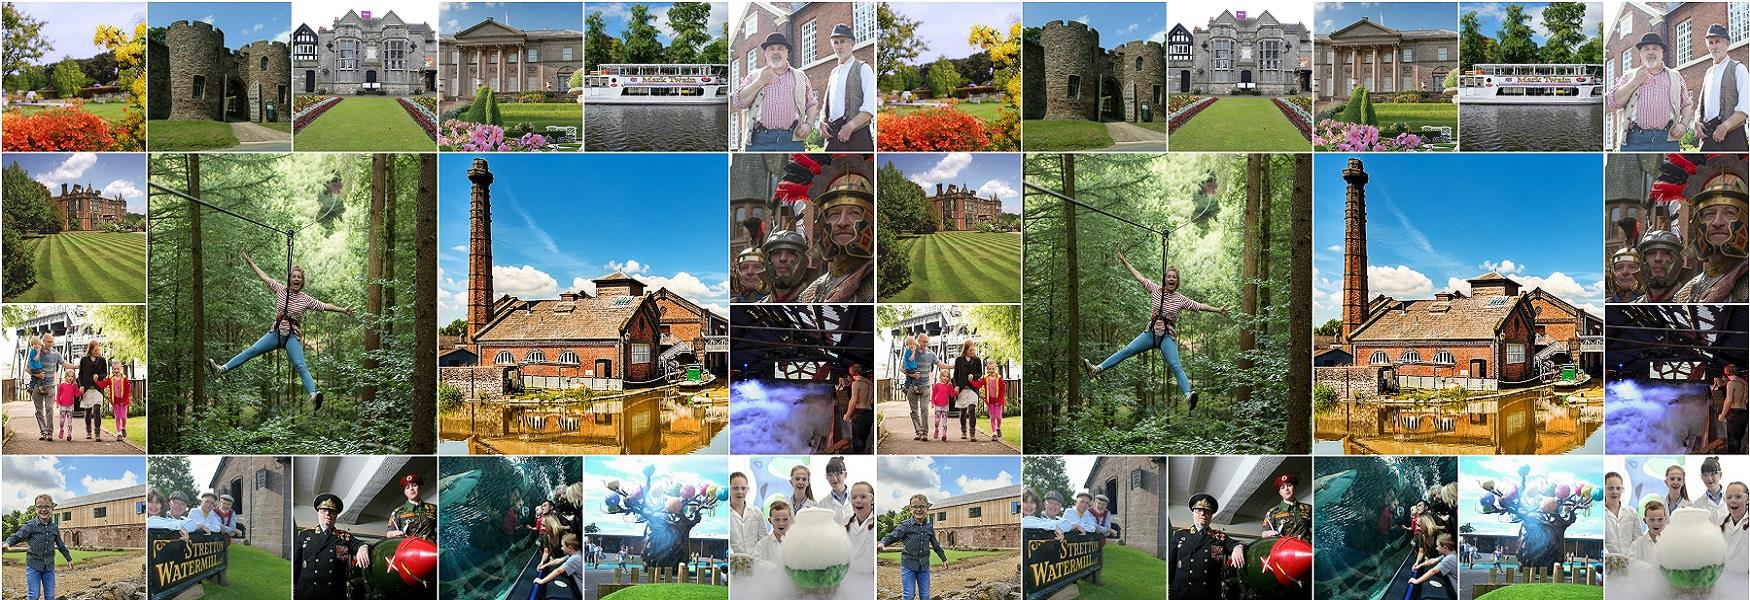 Download discount vouchers for Cheshire attractions